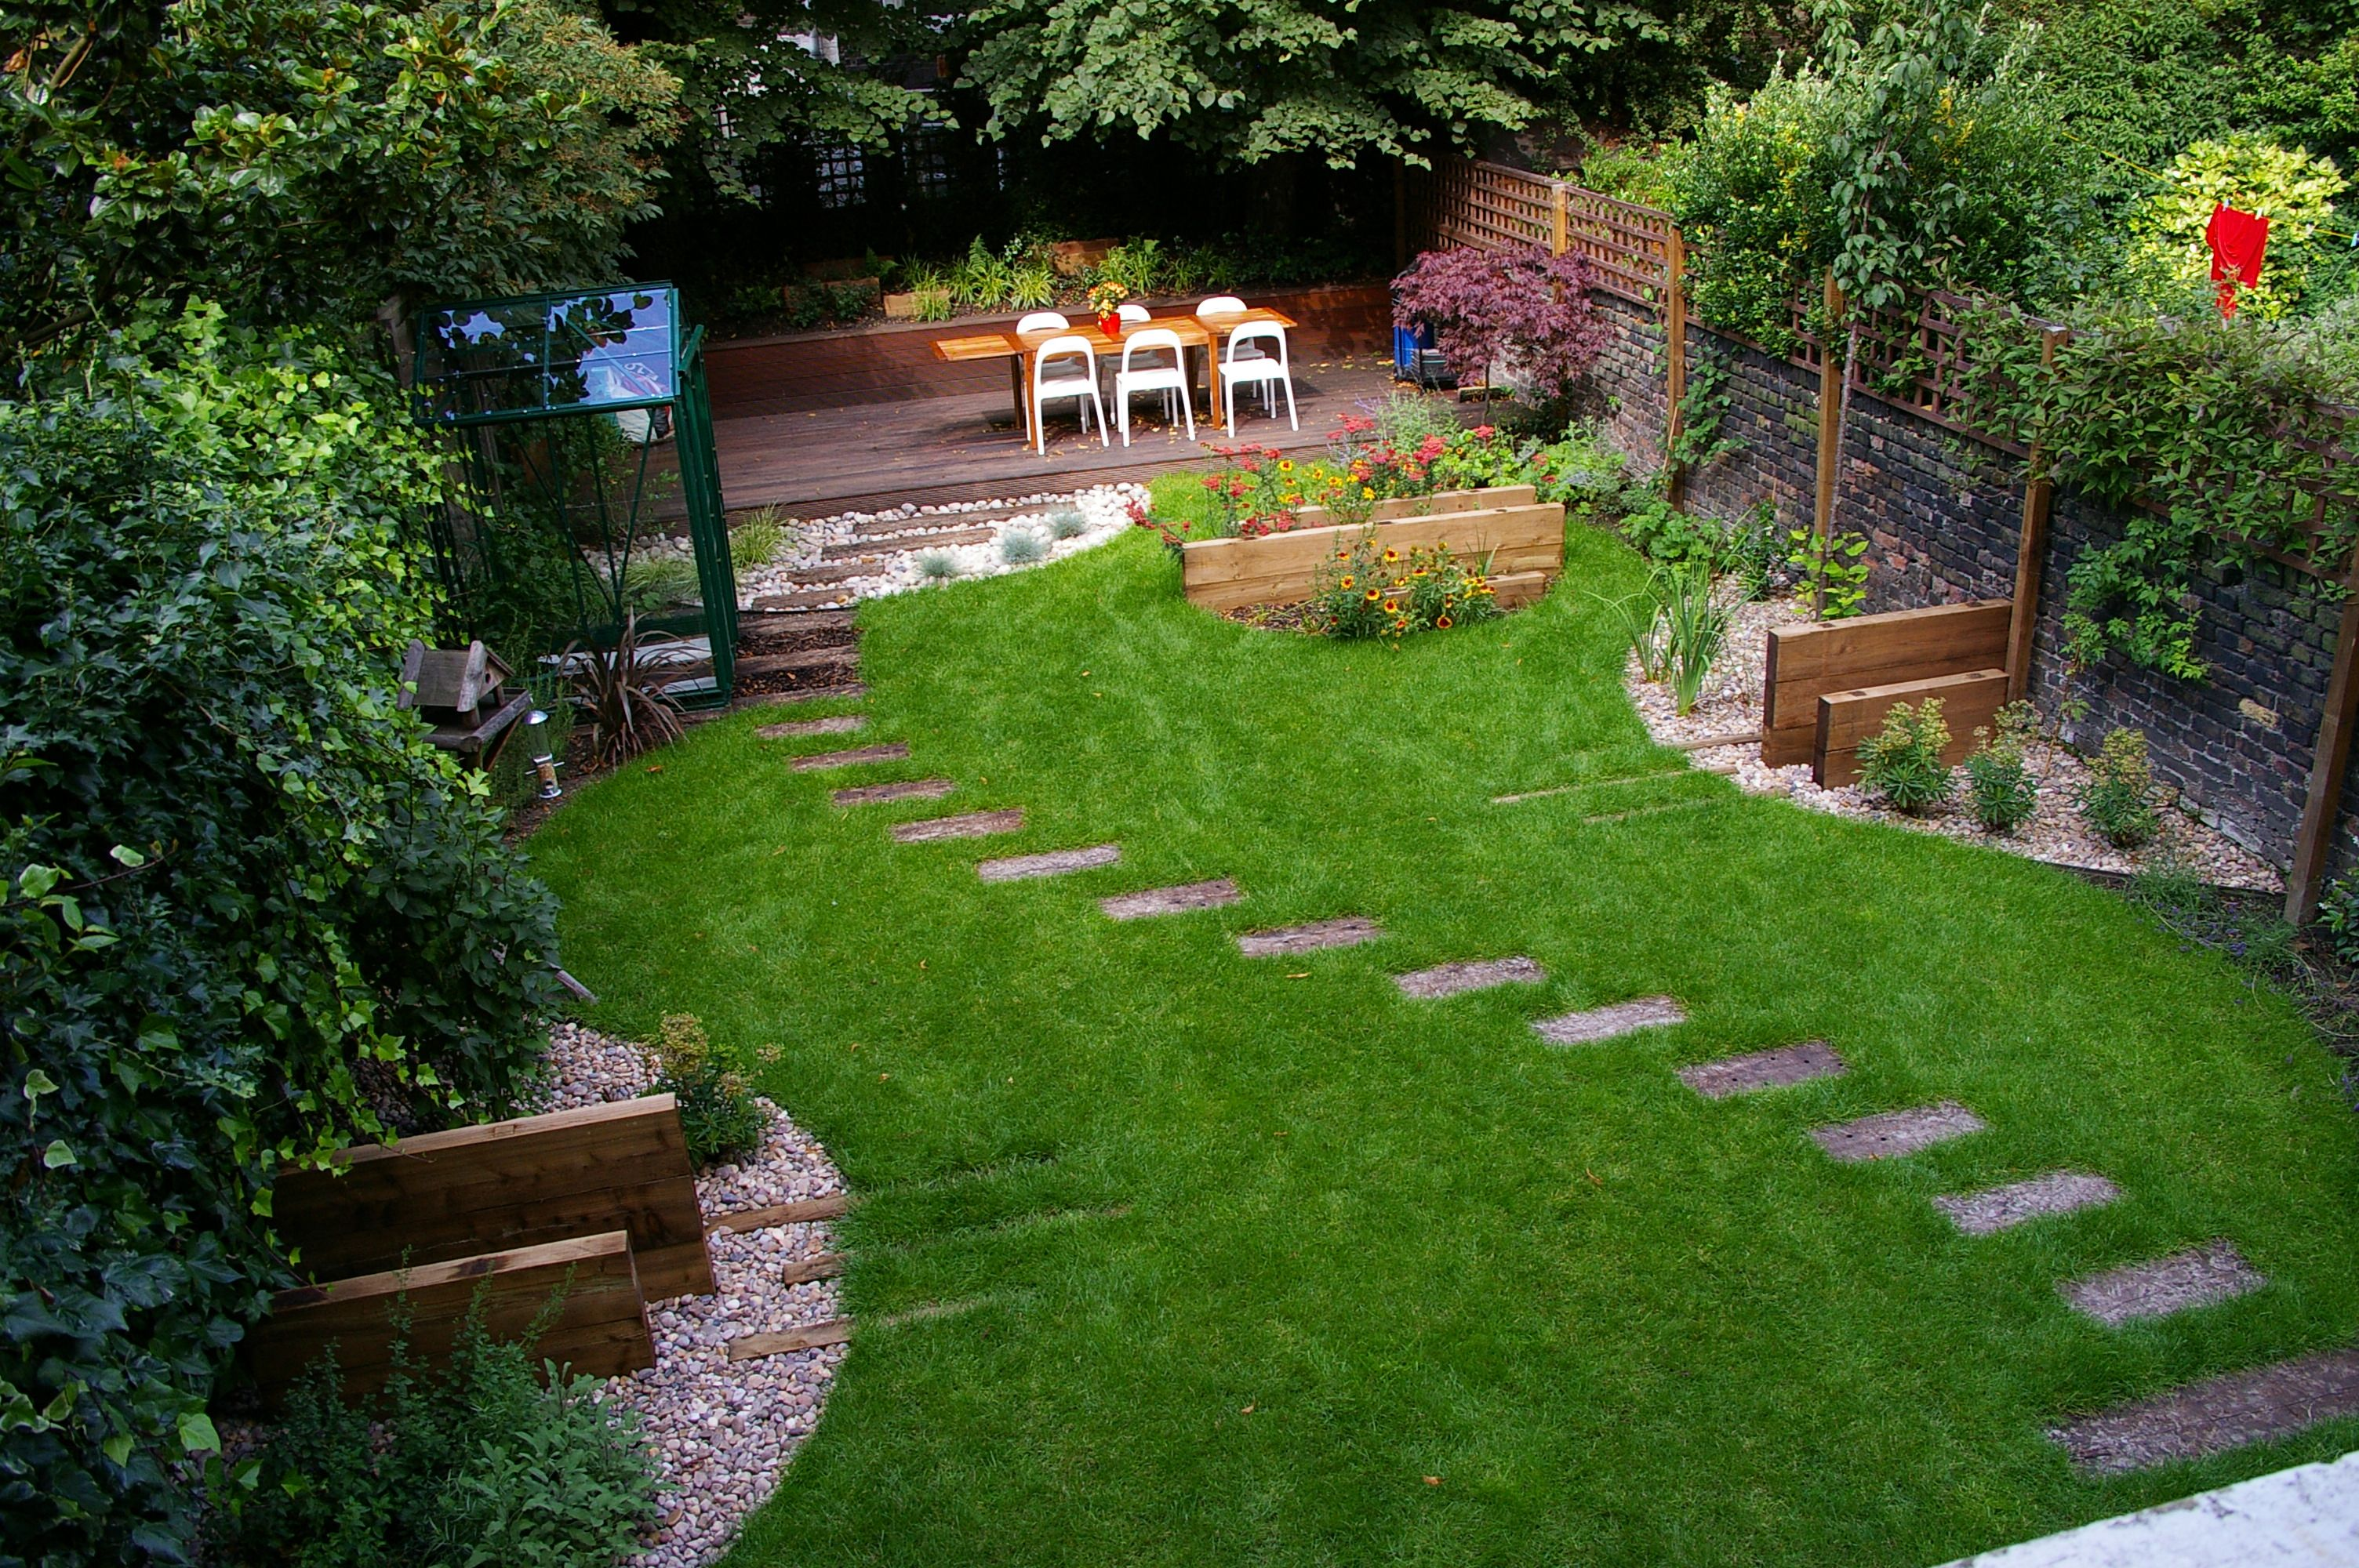 Garden Design Backyard backyard garden ideas | garden ideas and garden design